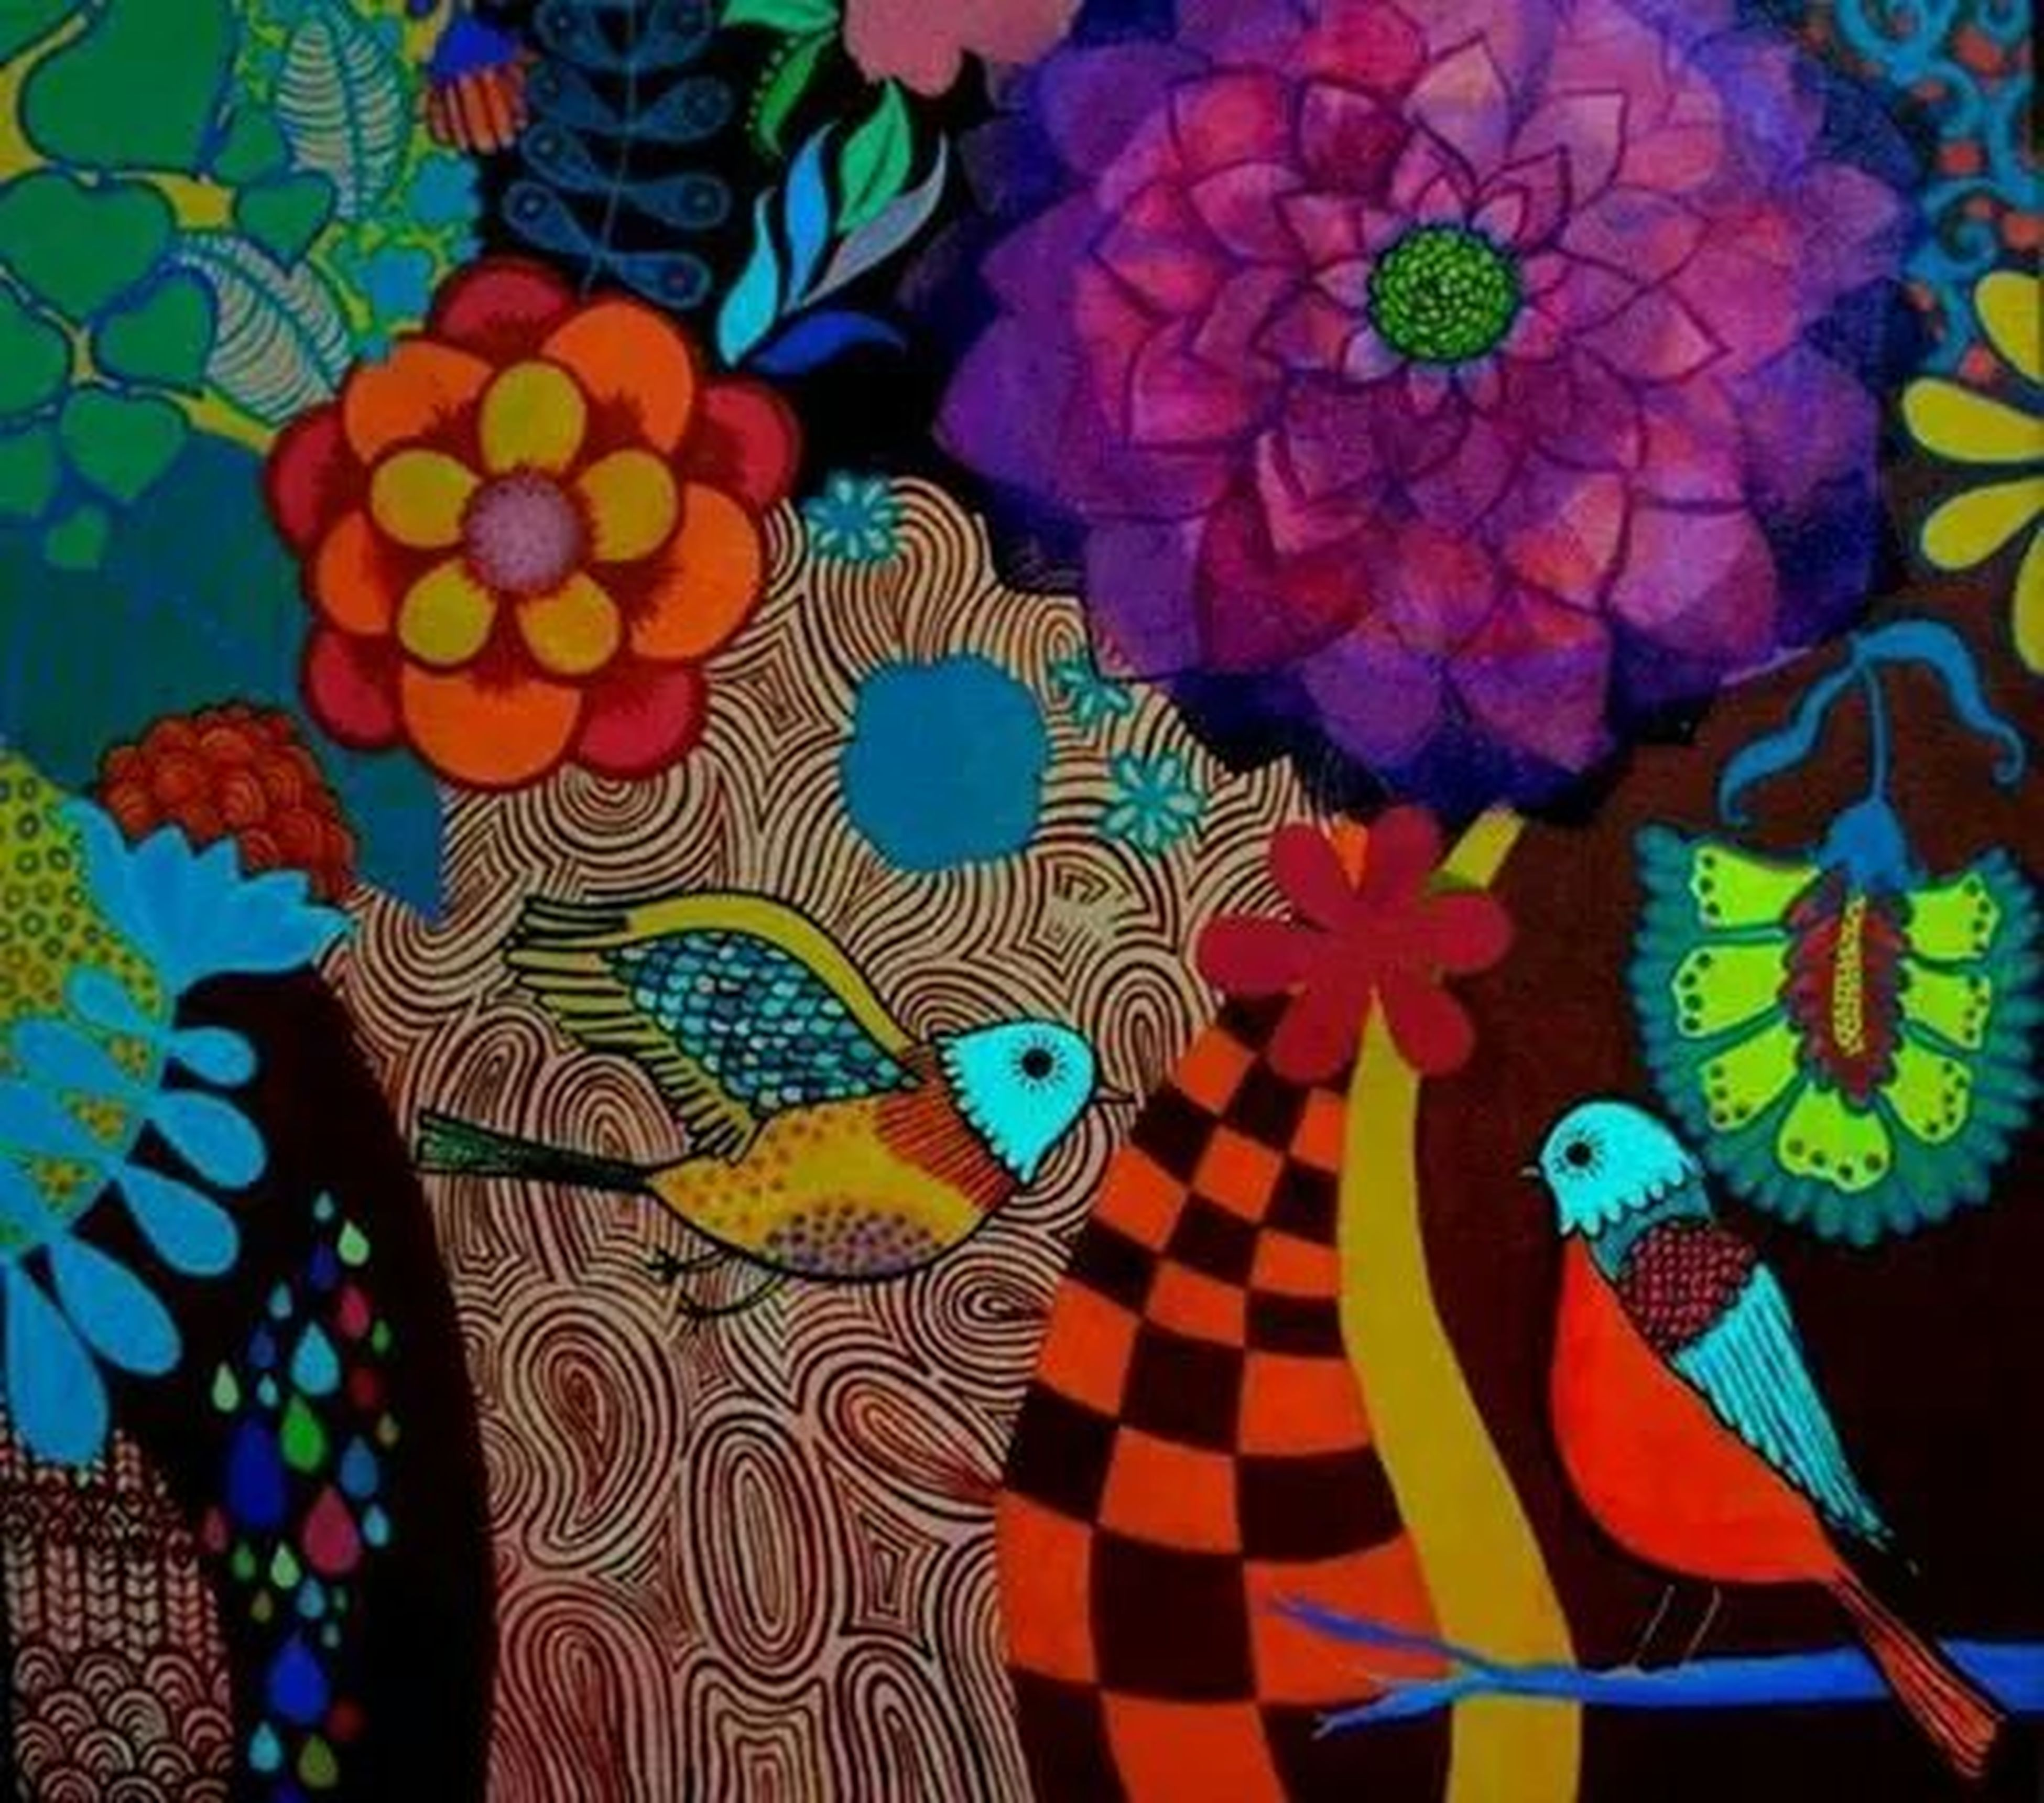 multi colored, art and craft, creativity, indoors, art, pattern, design, colorful, floral pattern, decoration, high angle view, craft, variation, celebration, full frame, animal representation, tradition, human representation